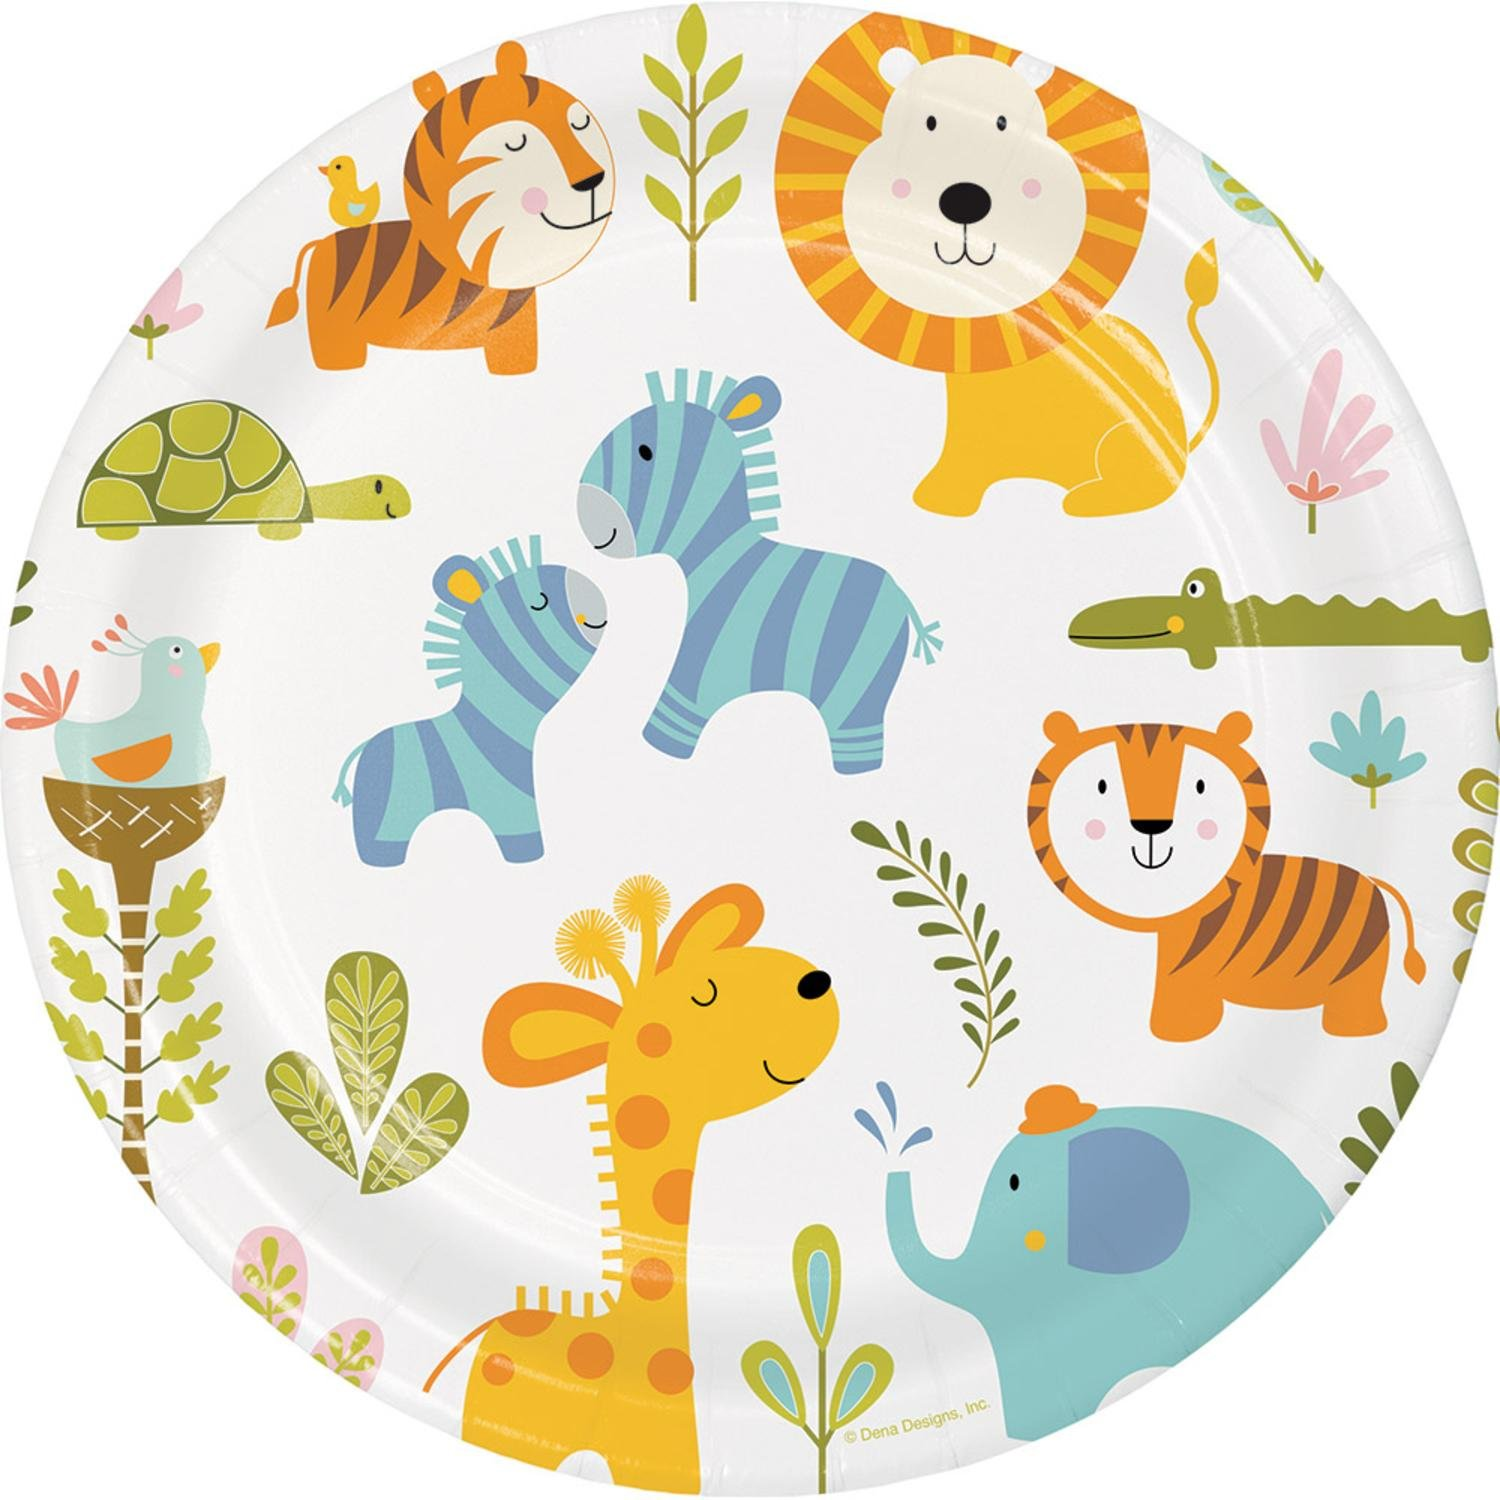 Dinner club colorful clipart picture transparent download Amazon.com: Club Pack of 96 Vibrantly Colored Happy Jungle ... picture transparent download